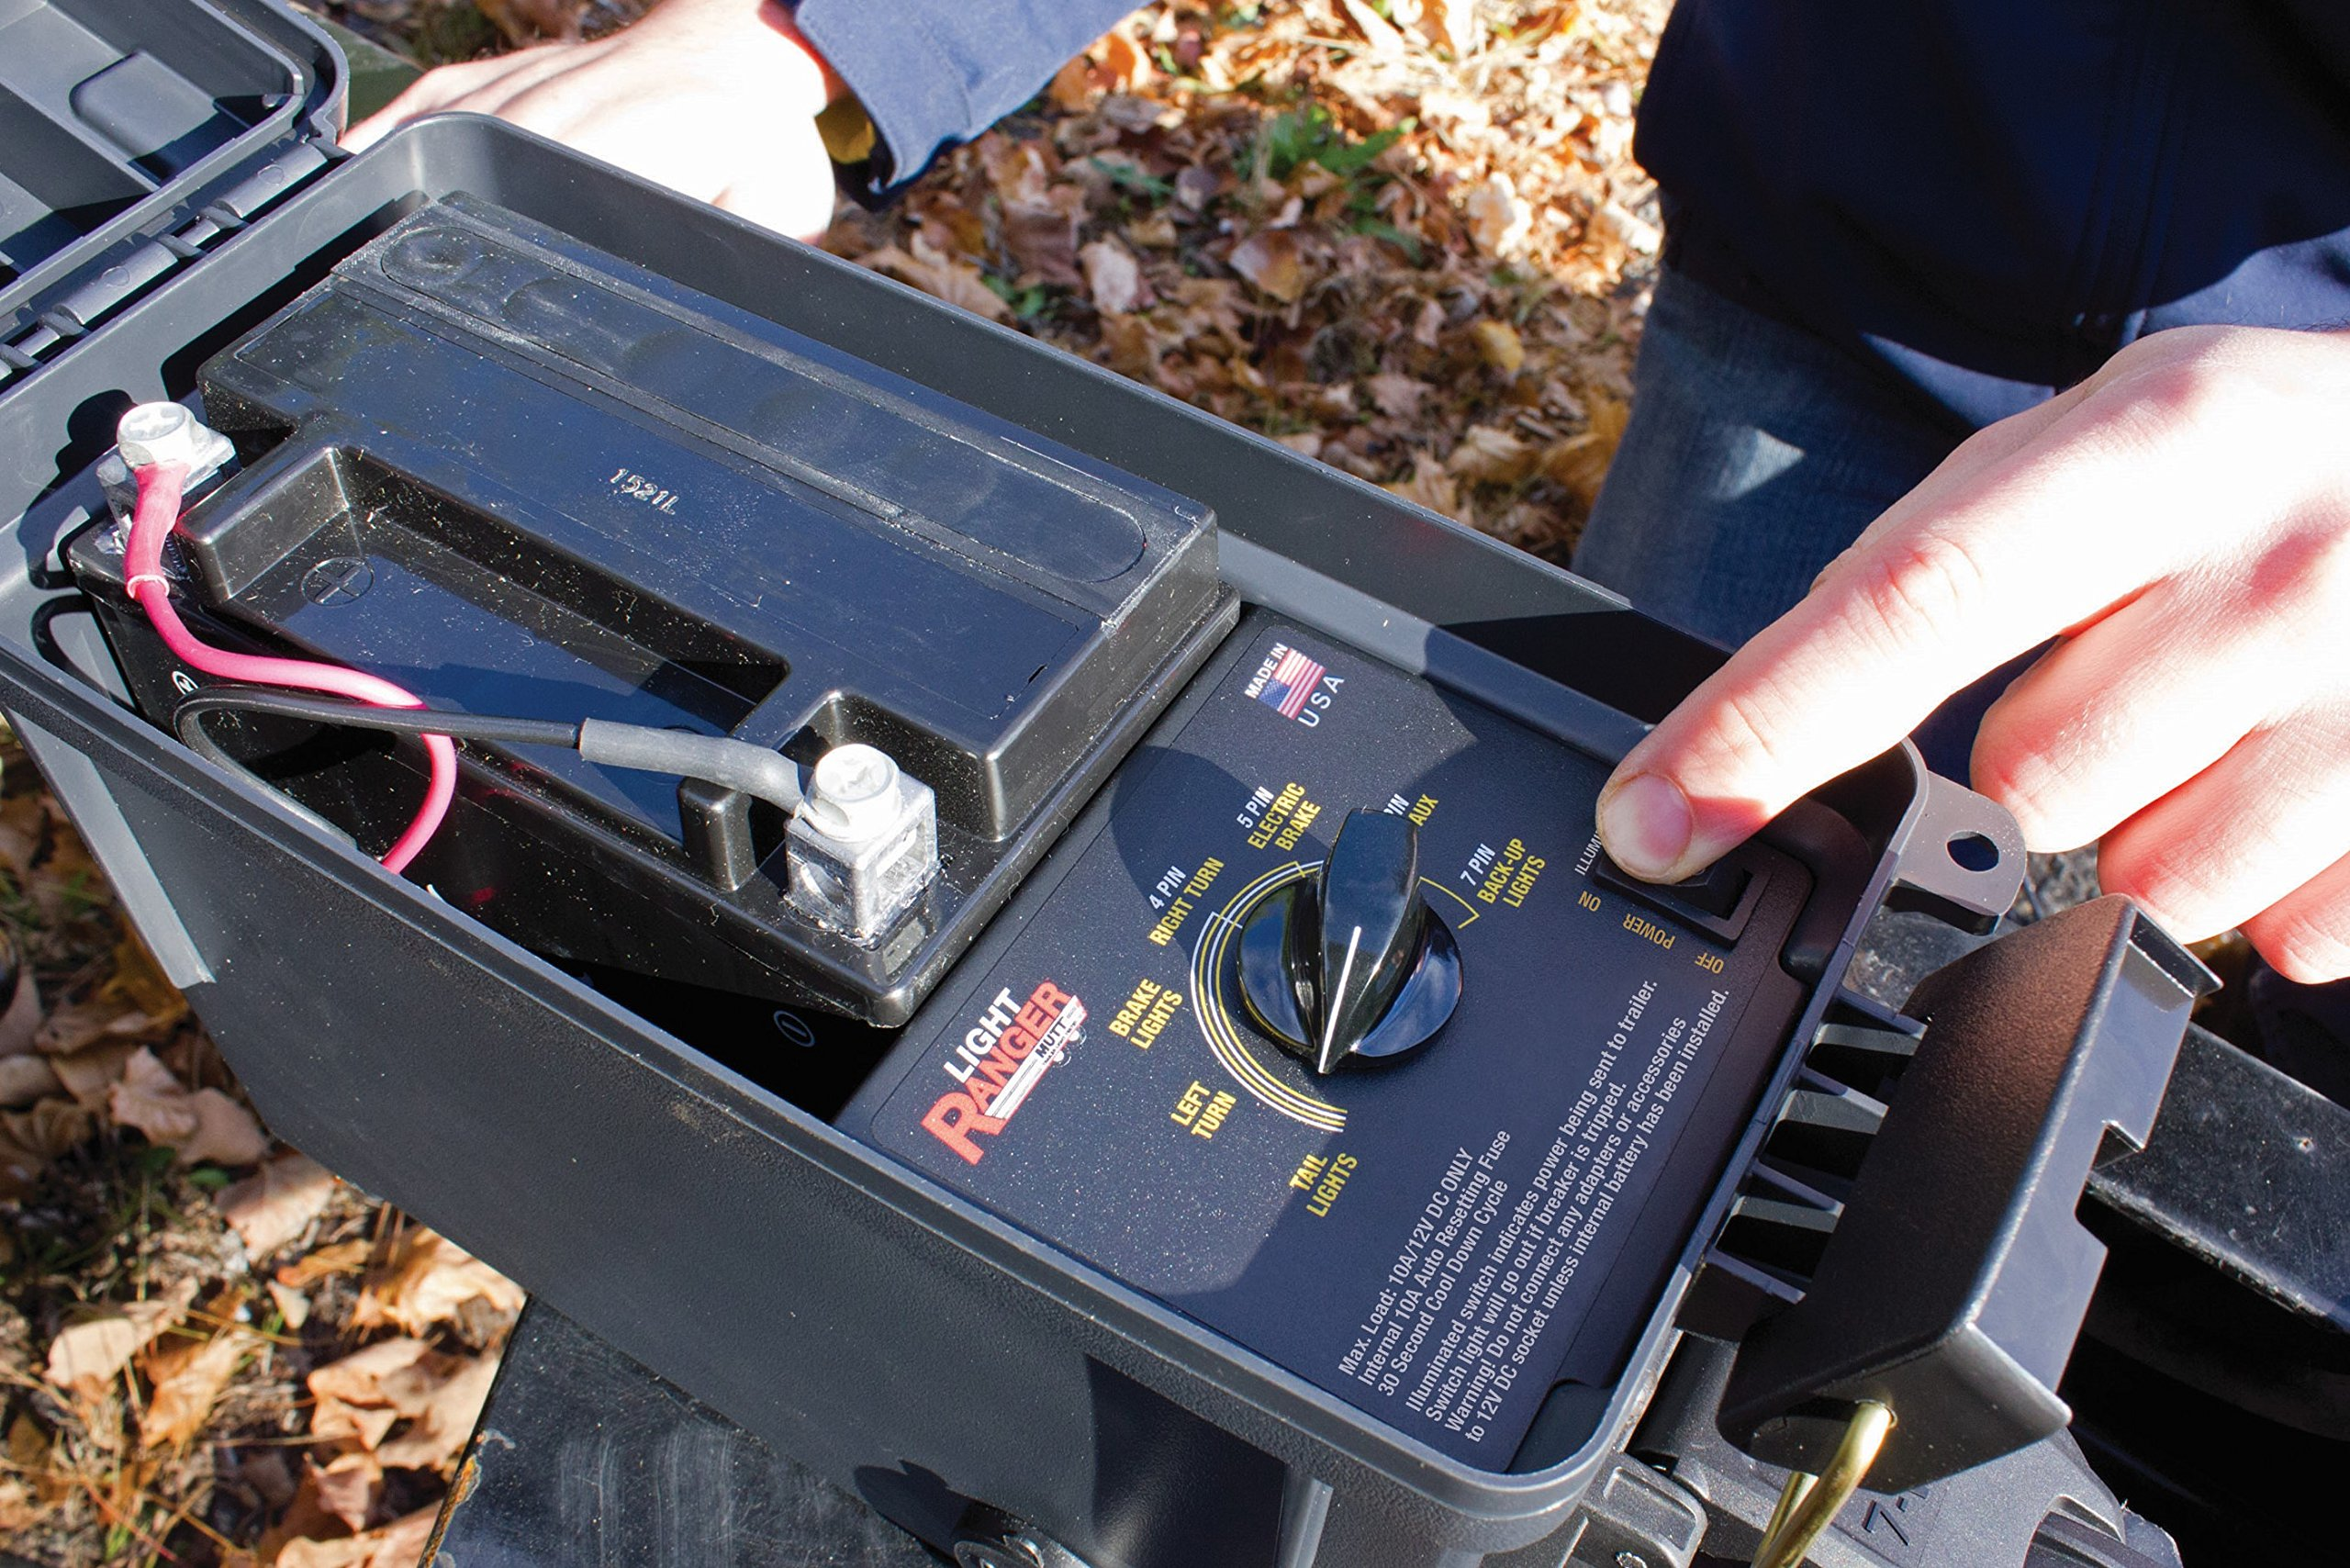 Innovative Products Of America 9101 Trailer Light Tester by Innovative Products Of America (Image #3)